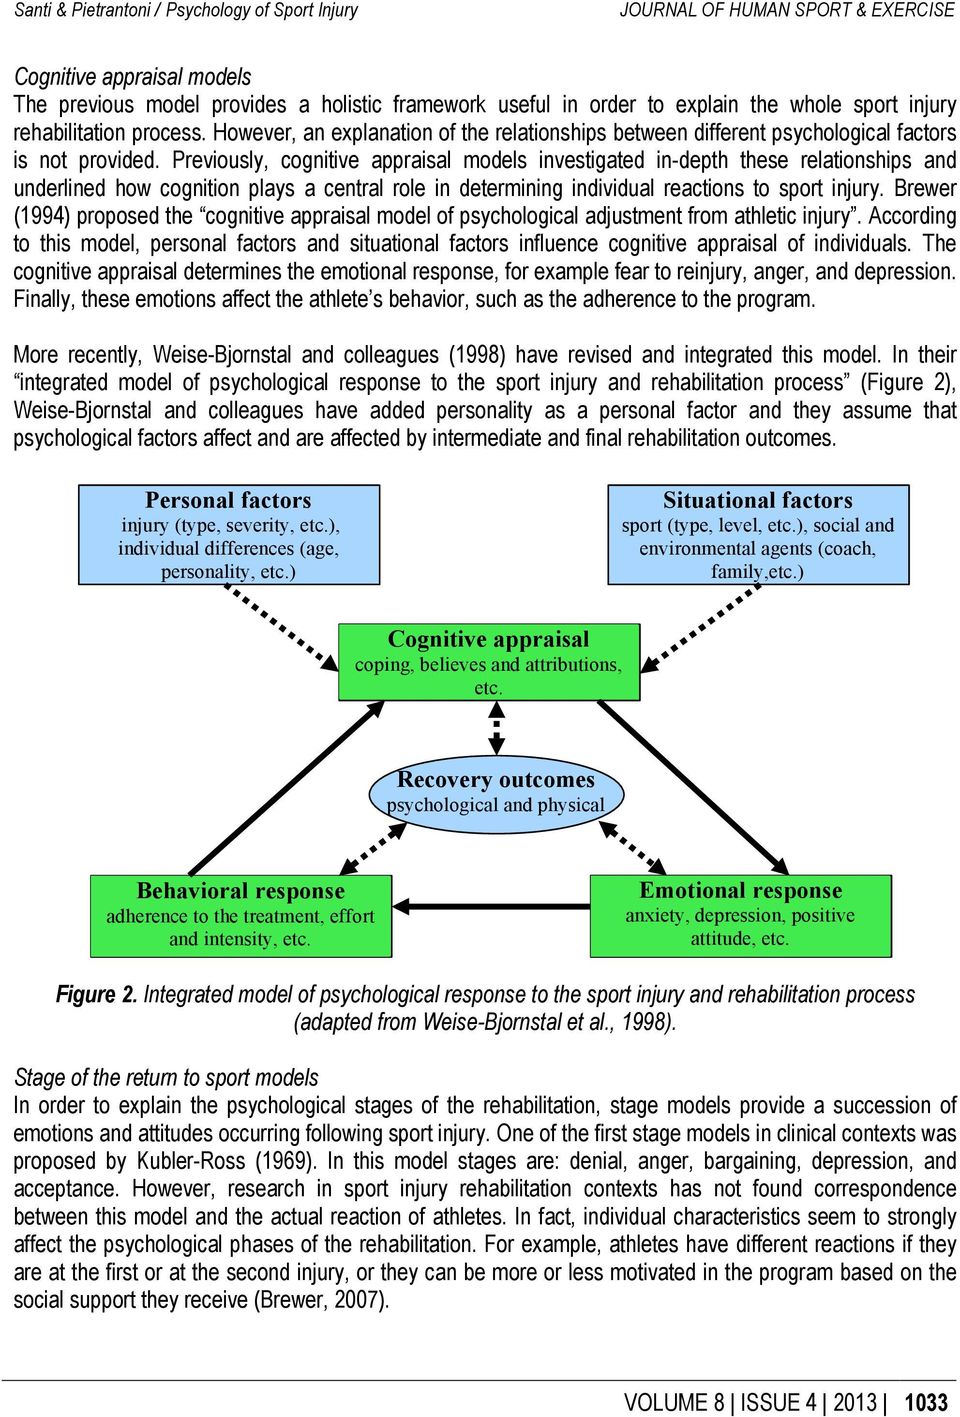 Previously, cognitive appraisal models investigated in-depth these relationships and underlined how cognition plays a central role in determining individual reactions to sport injury.